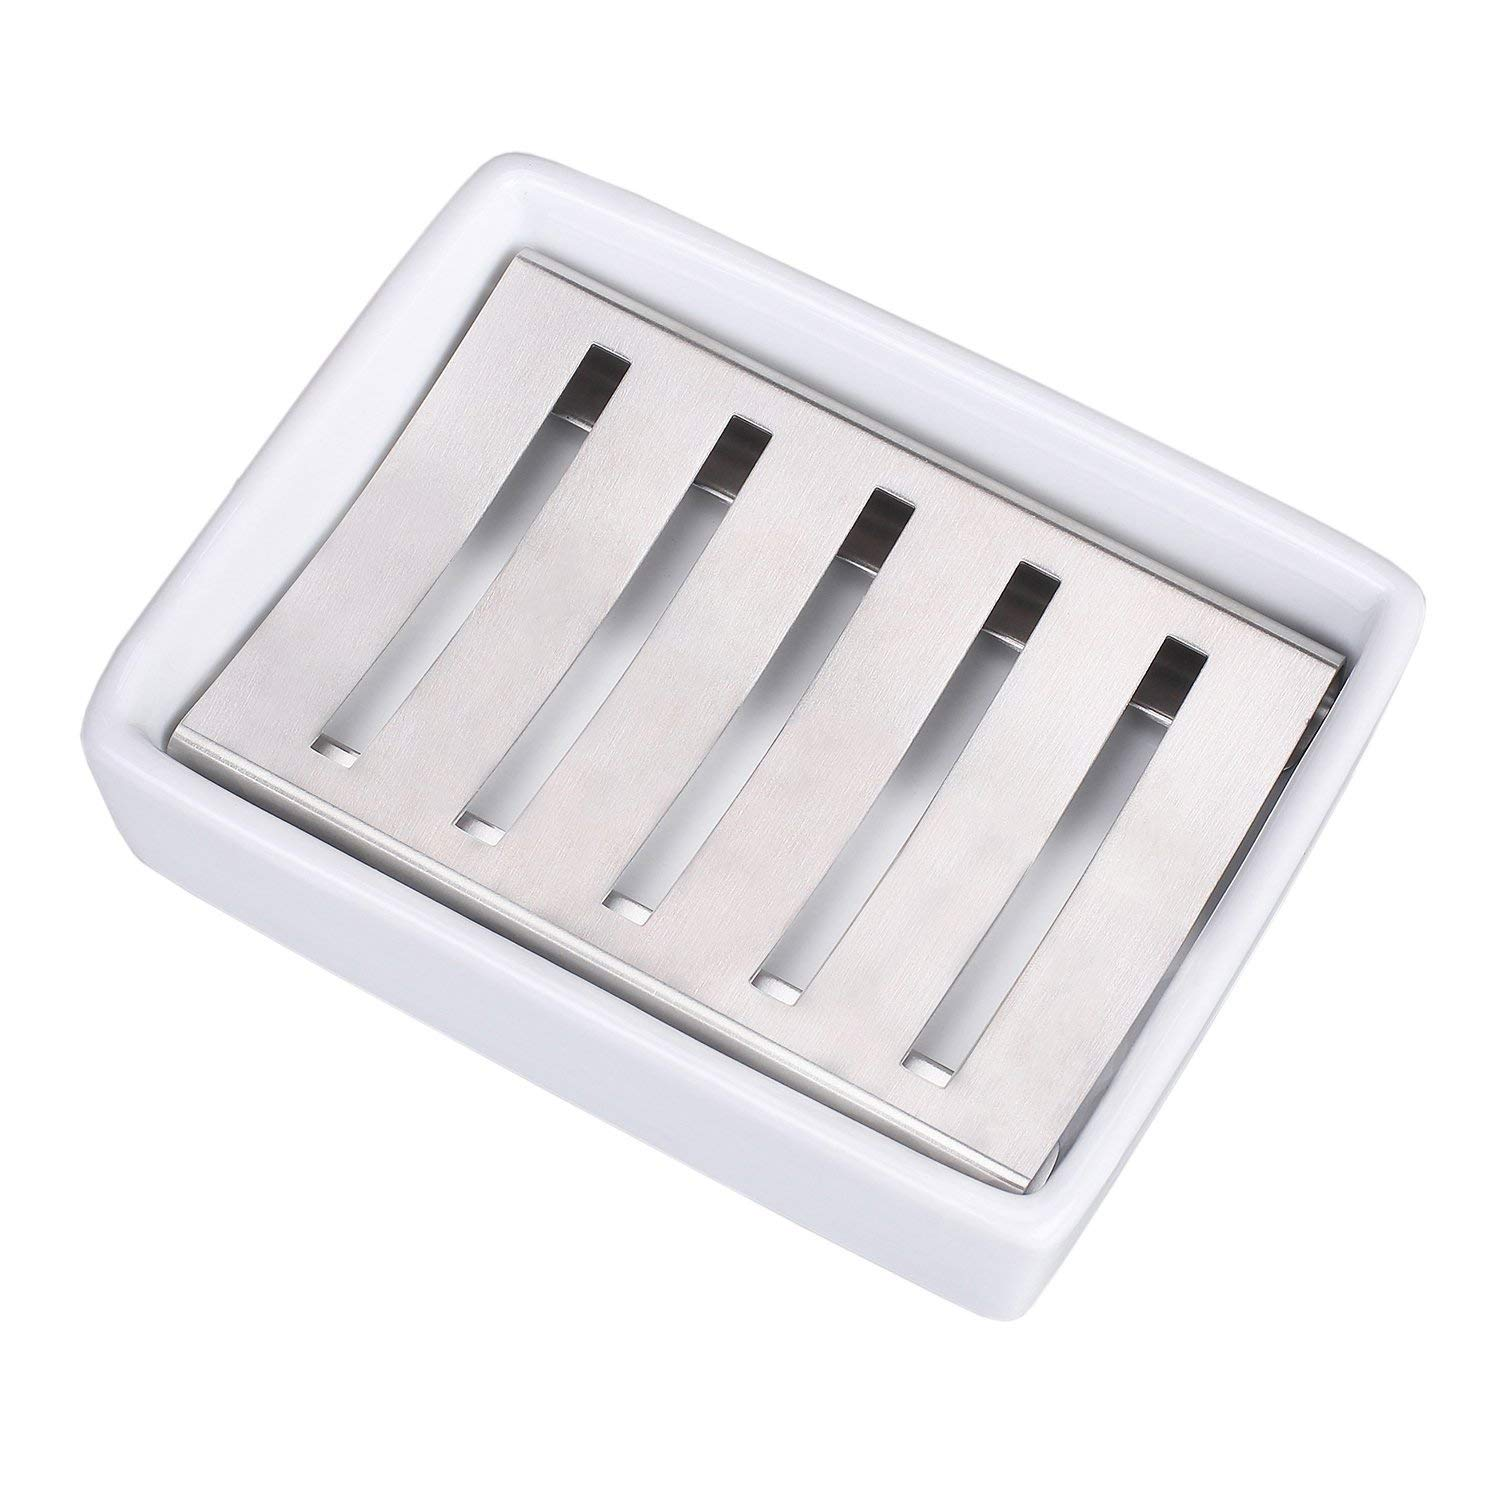 Stainless Steel And Ceramic Soap Dish Stainless Steel Soap Holder for Bathroom and Shower Double Layer Draining Soap Box (Large)